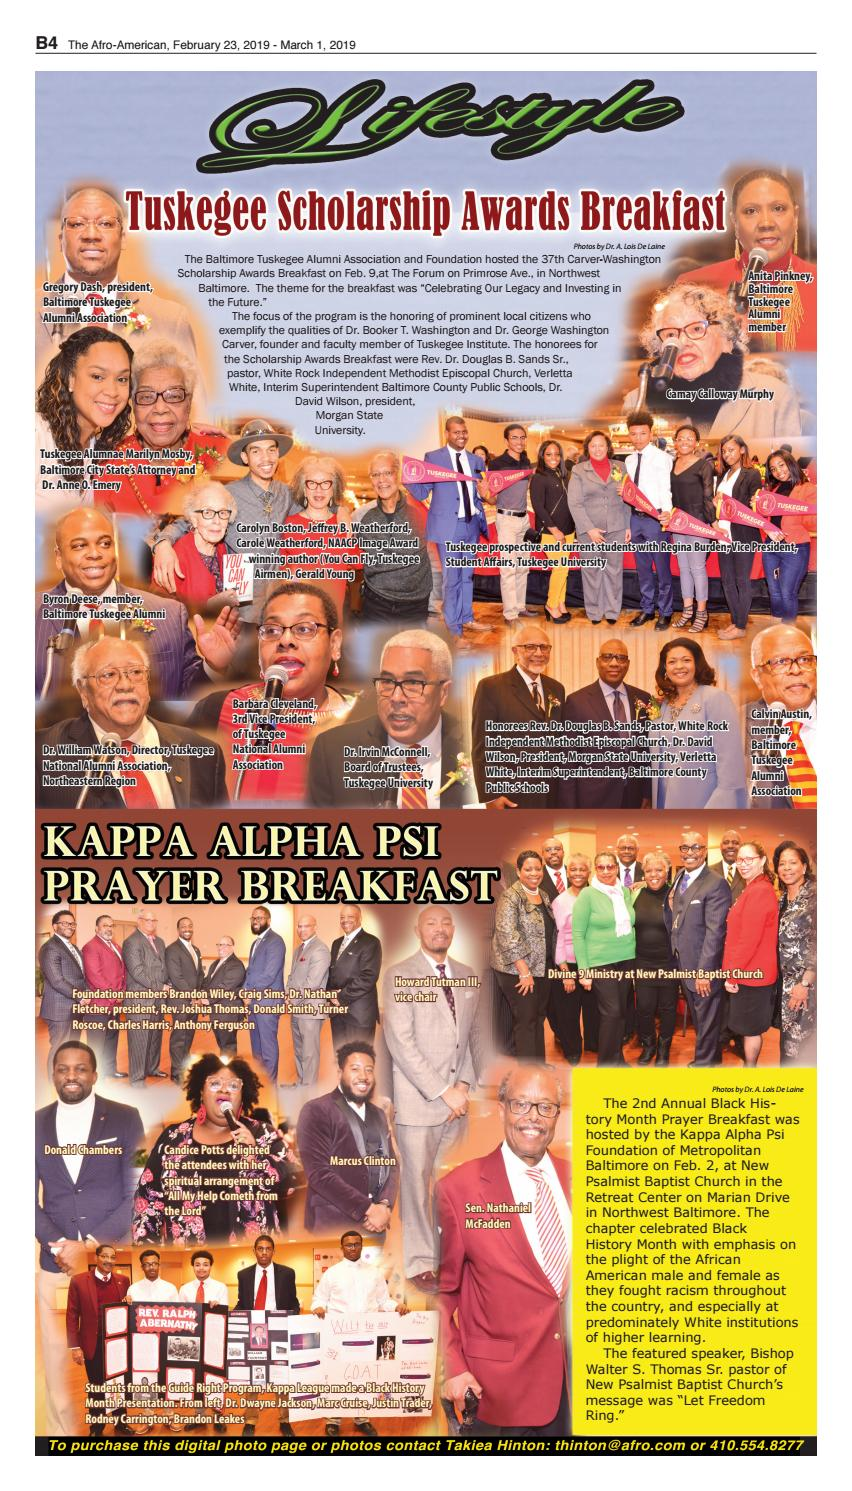 LifeStyle 2-22-2019 by The AFRO American - issuu